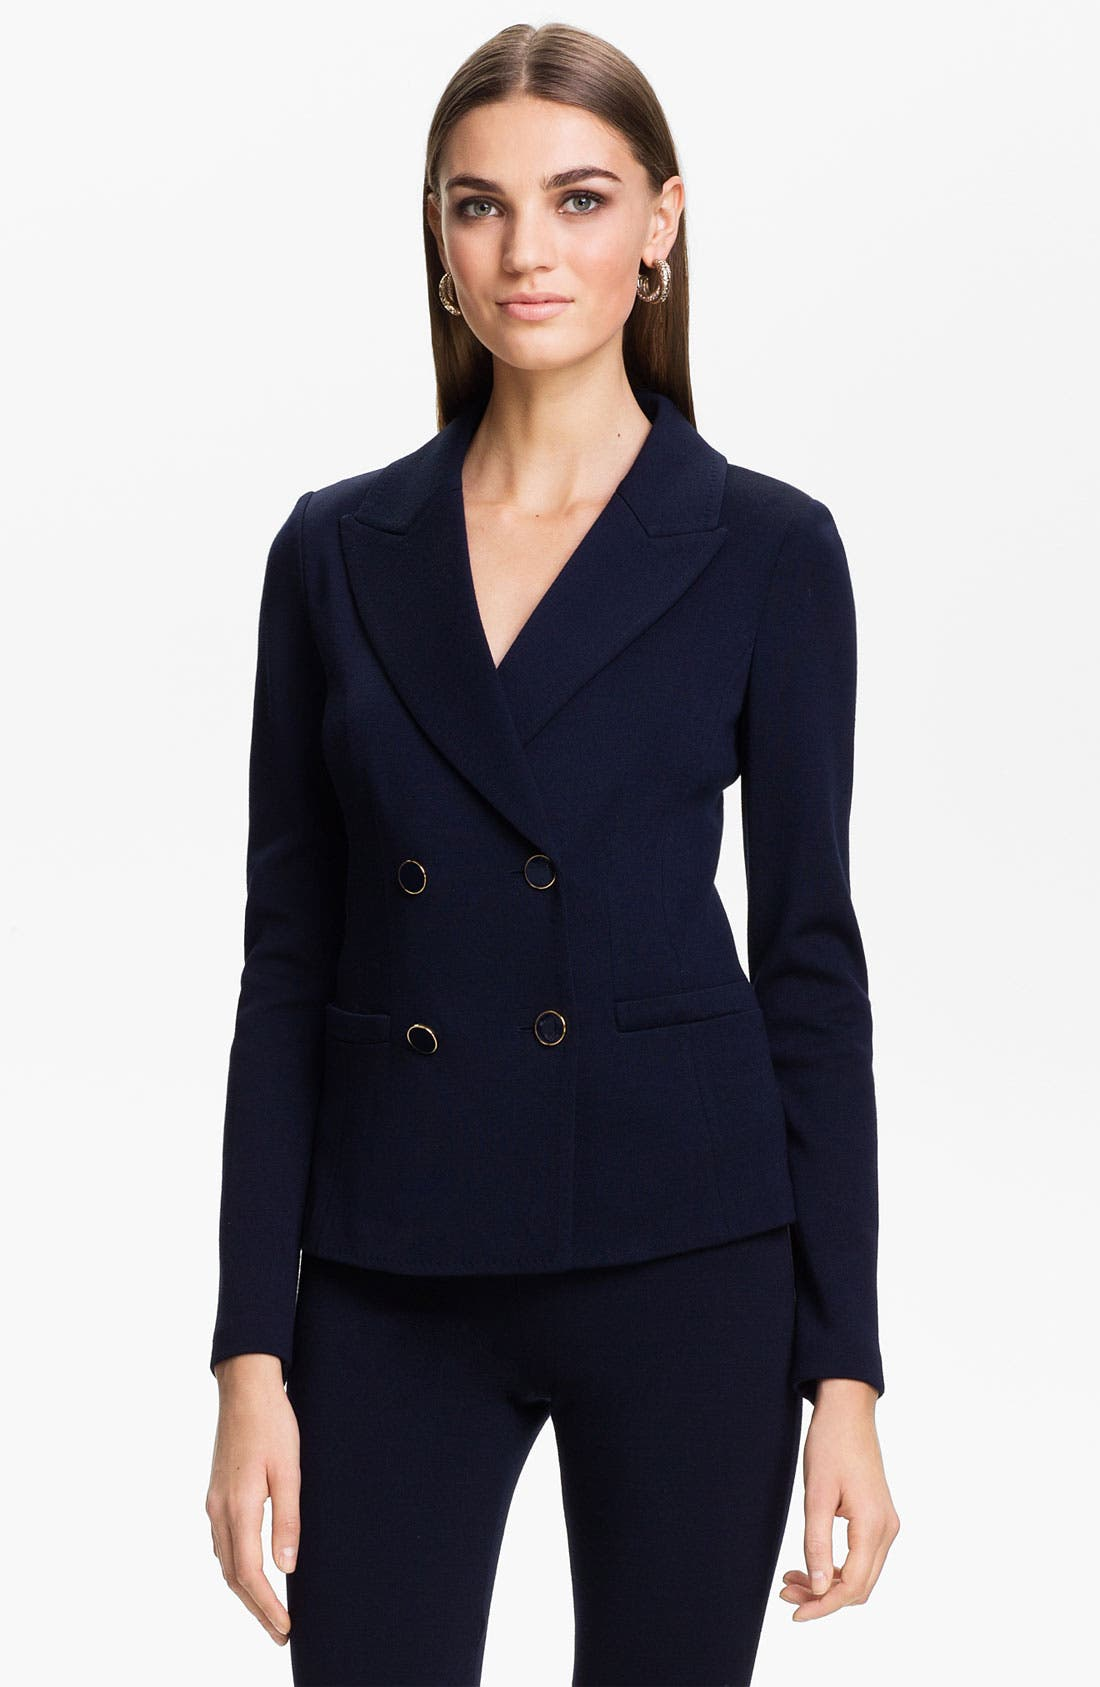 Main Image - St. John Collection Double Breasted Milano Knit Jacket